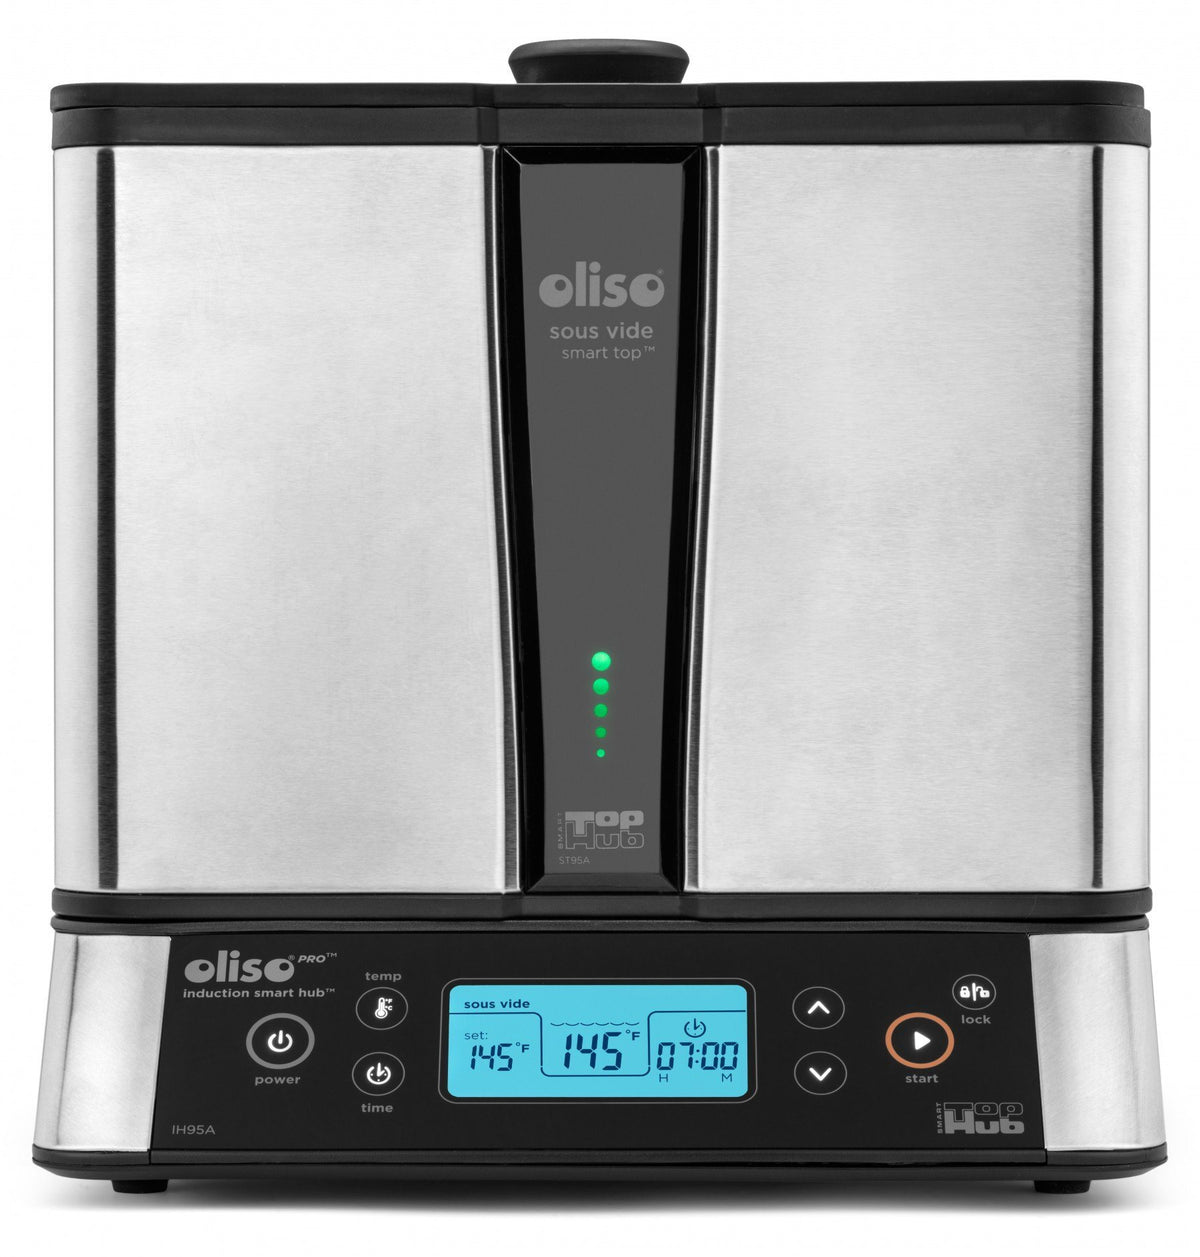 Oliso Sous Vide Smart Hub Induction Cooker with Bonus PolyScience Smoking Gun Sous Vide Machine Oliso Front on View